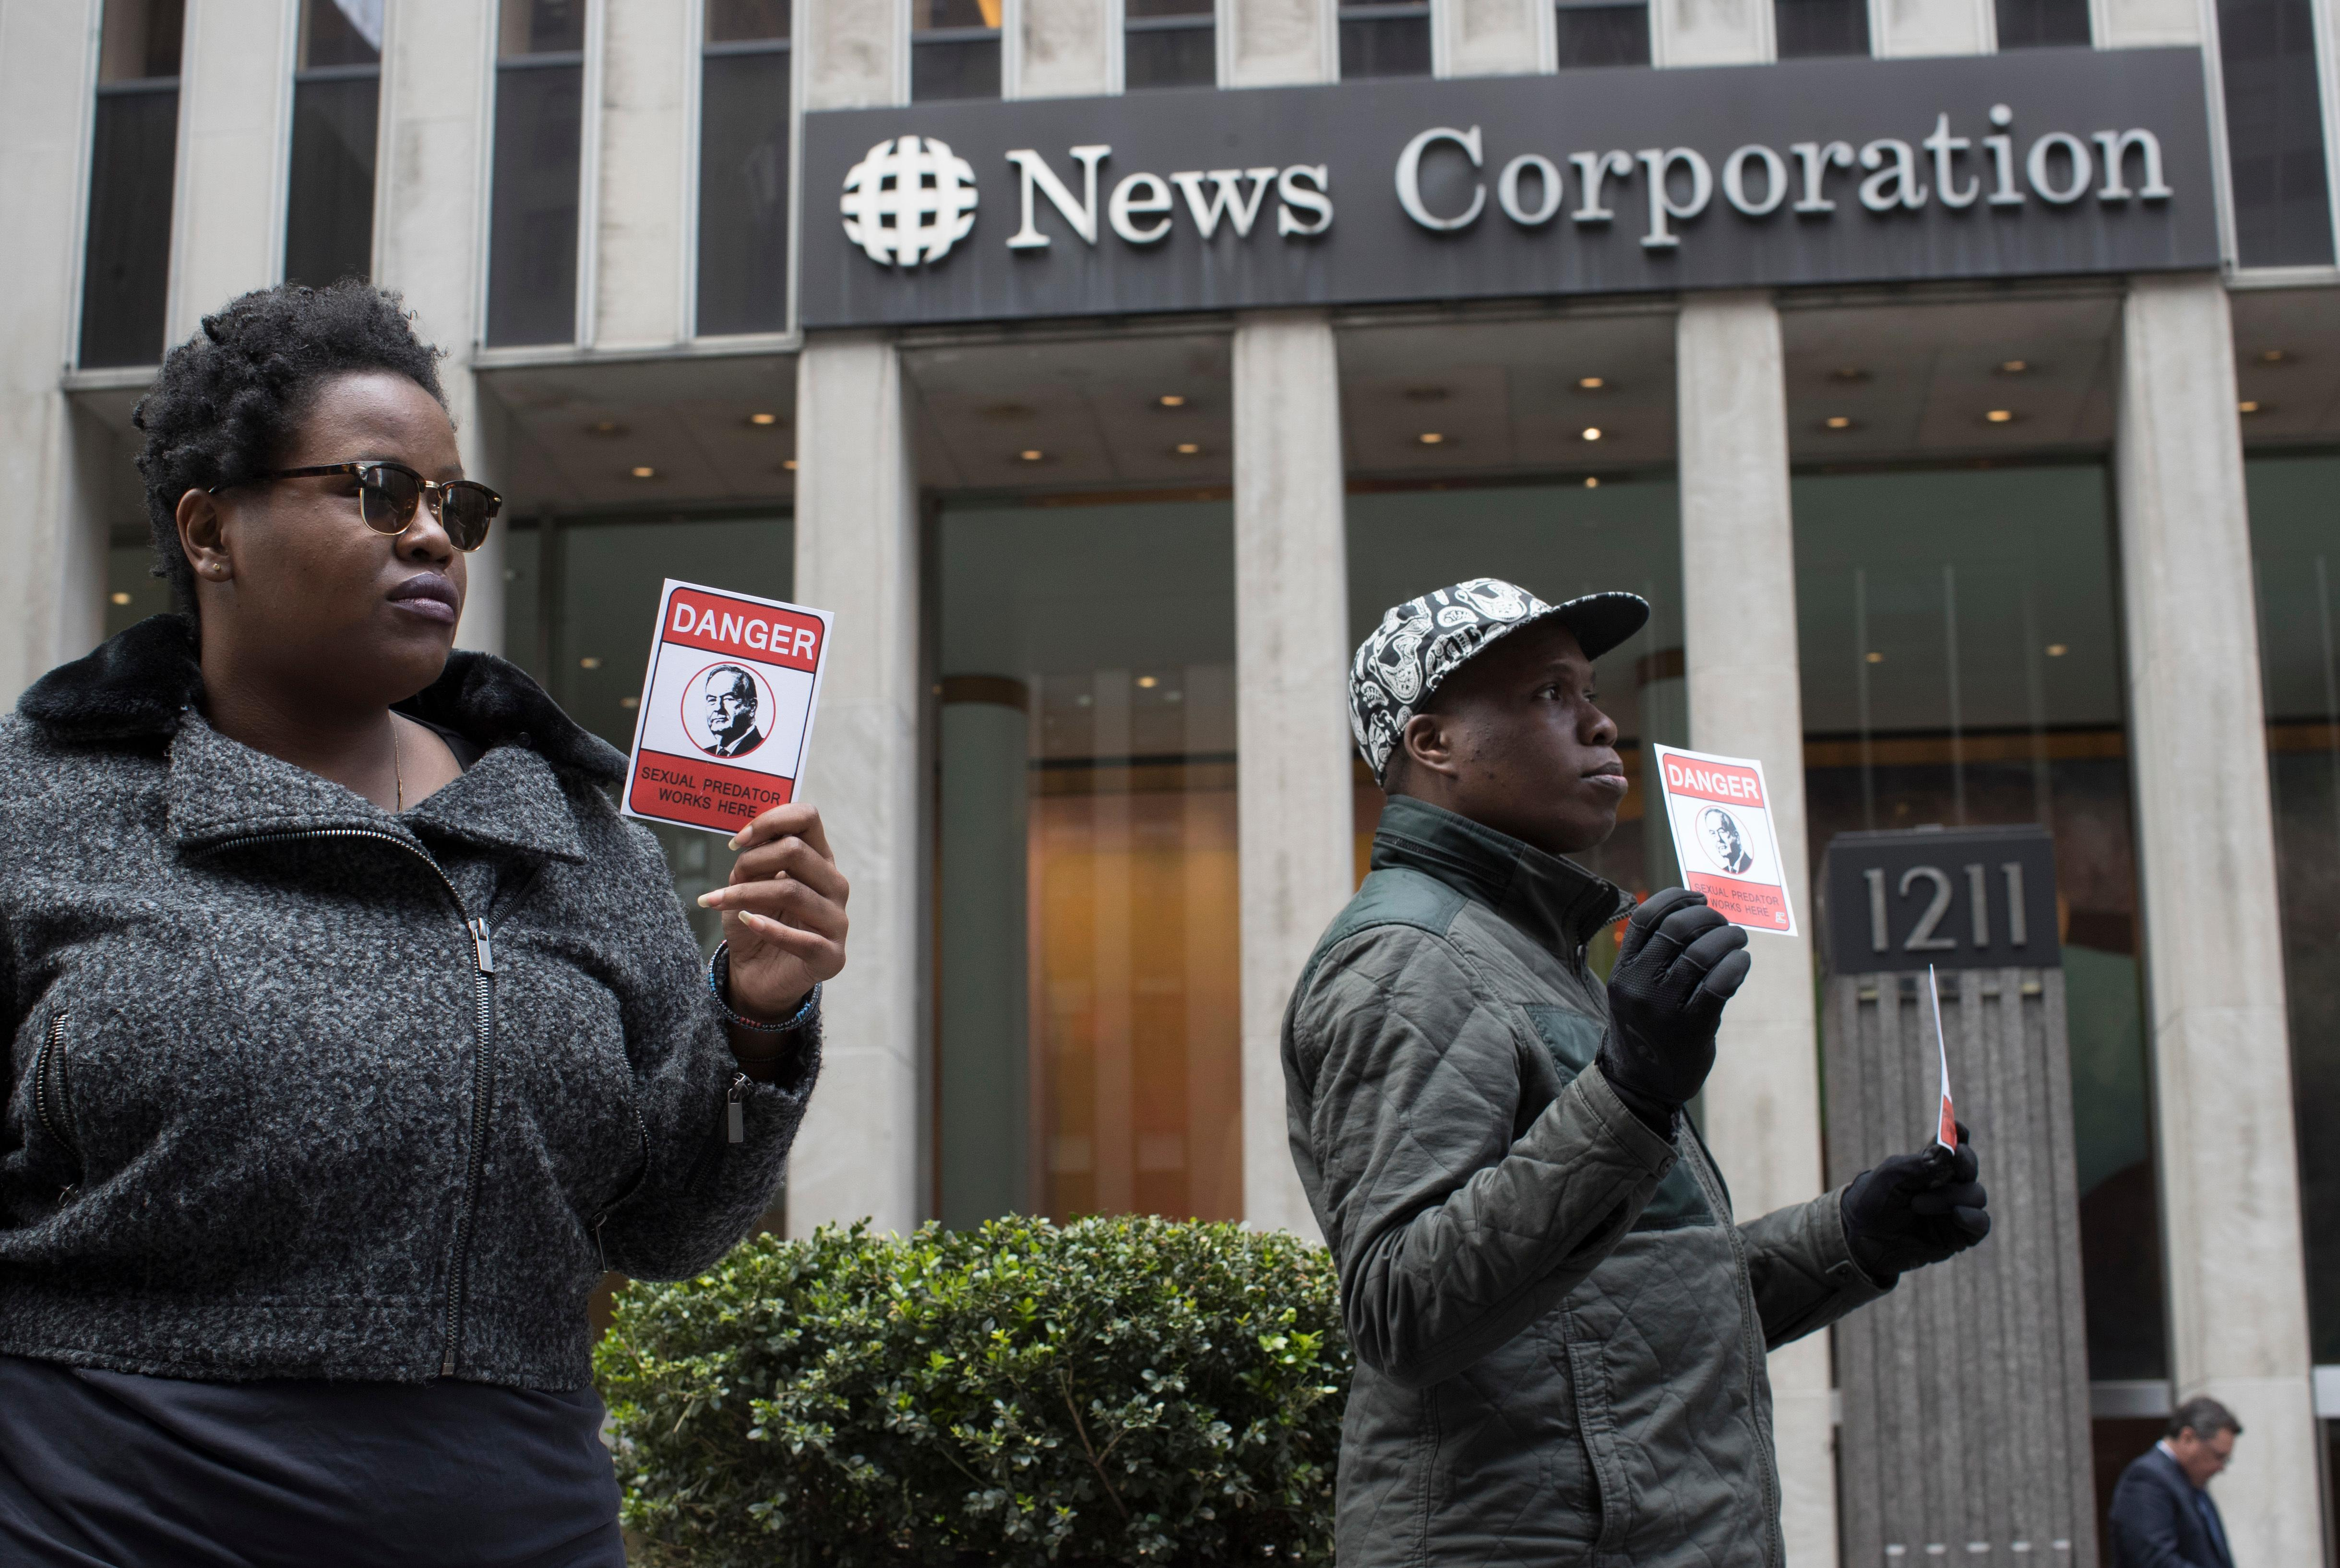 Activist with the Color of Change protest Bill O'Reilly outside the News Corp. headquarters in Midtown Manhattan, Wednesday, April 19, 2017. O'Reilly has lost his job at Fox News Channel after allegations that he sexually harassed women. (AP Photo/Mary Altaffer)